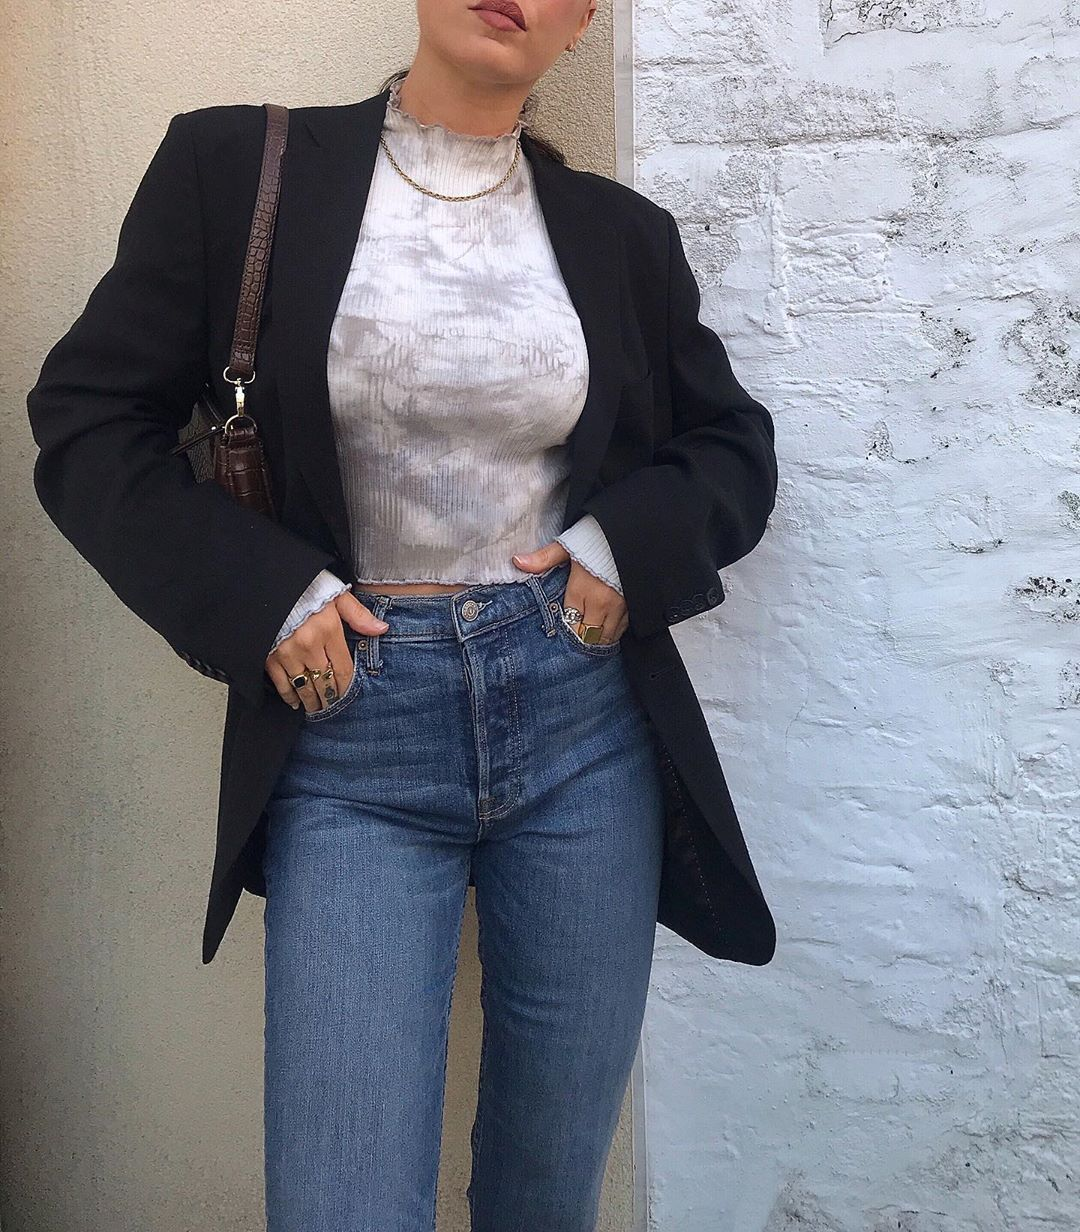 Monique Agar On Instagram There S A New Blog Post Up On Monagar Com All About The Latest Black Friday Deals This Week Check Ou Fashion Black Friday Clothes